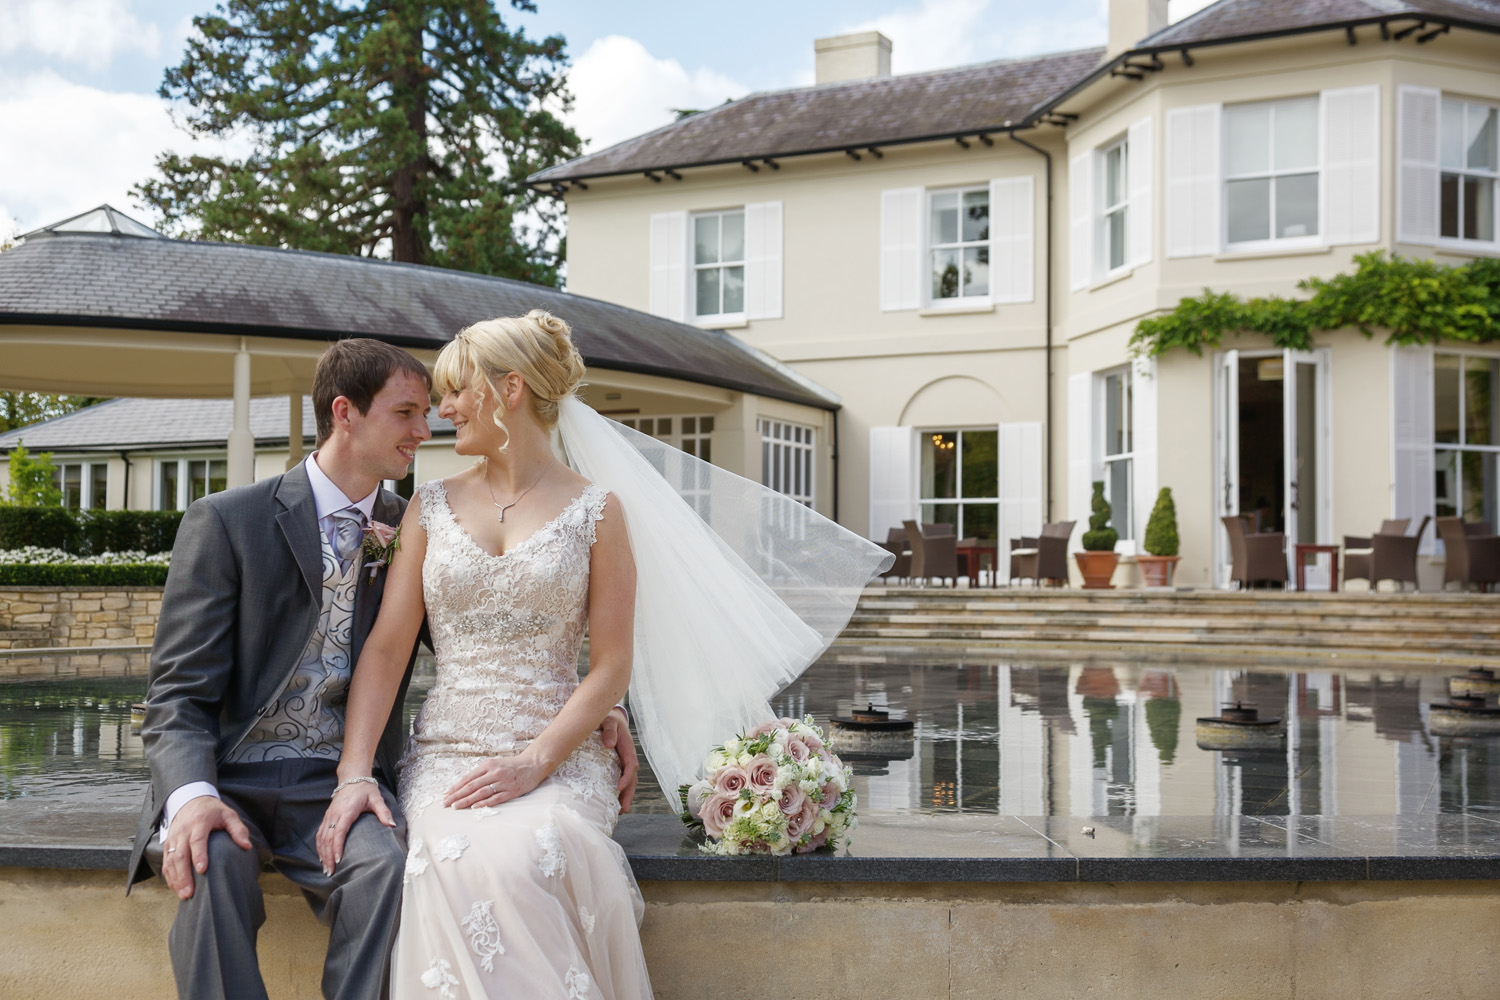 The_Vineyard_Hotel_Wedding_Photographer_Newbury_Berkshire_029.jpg